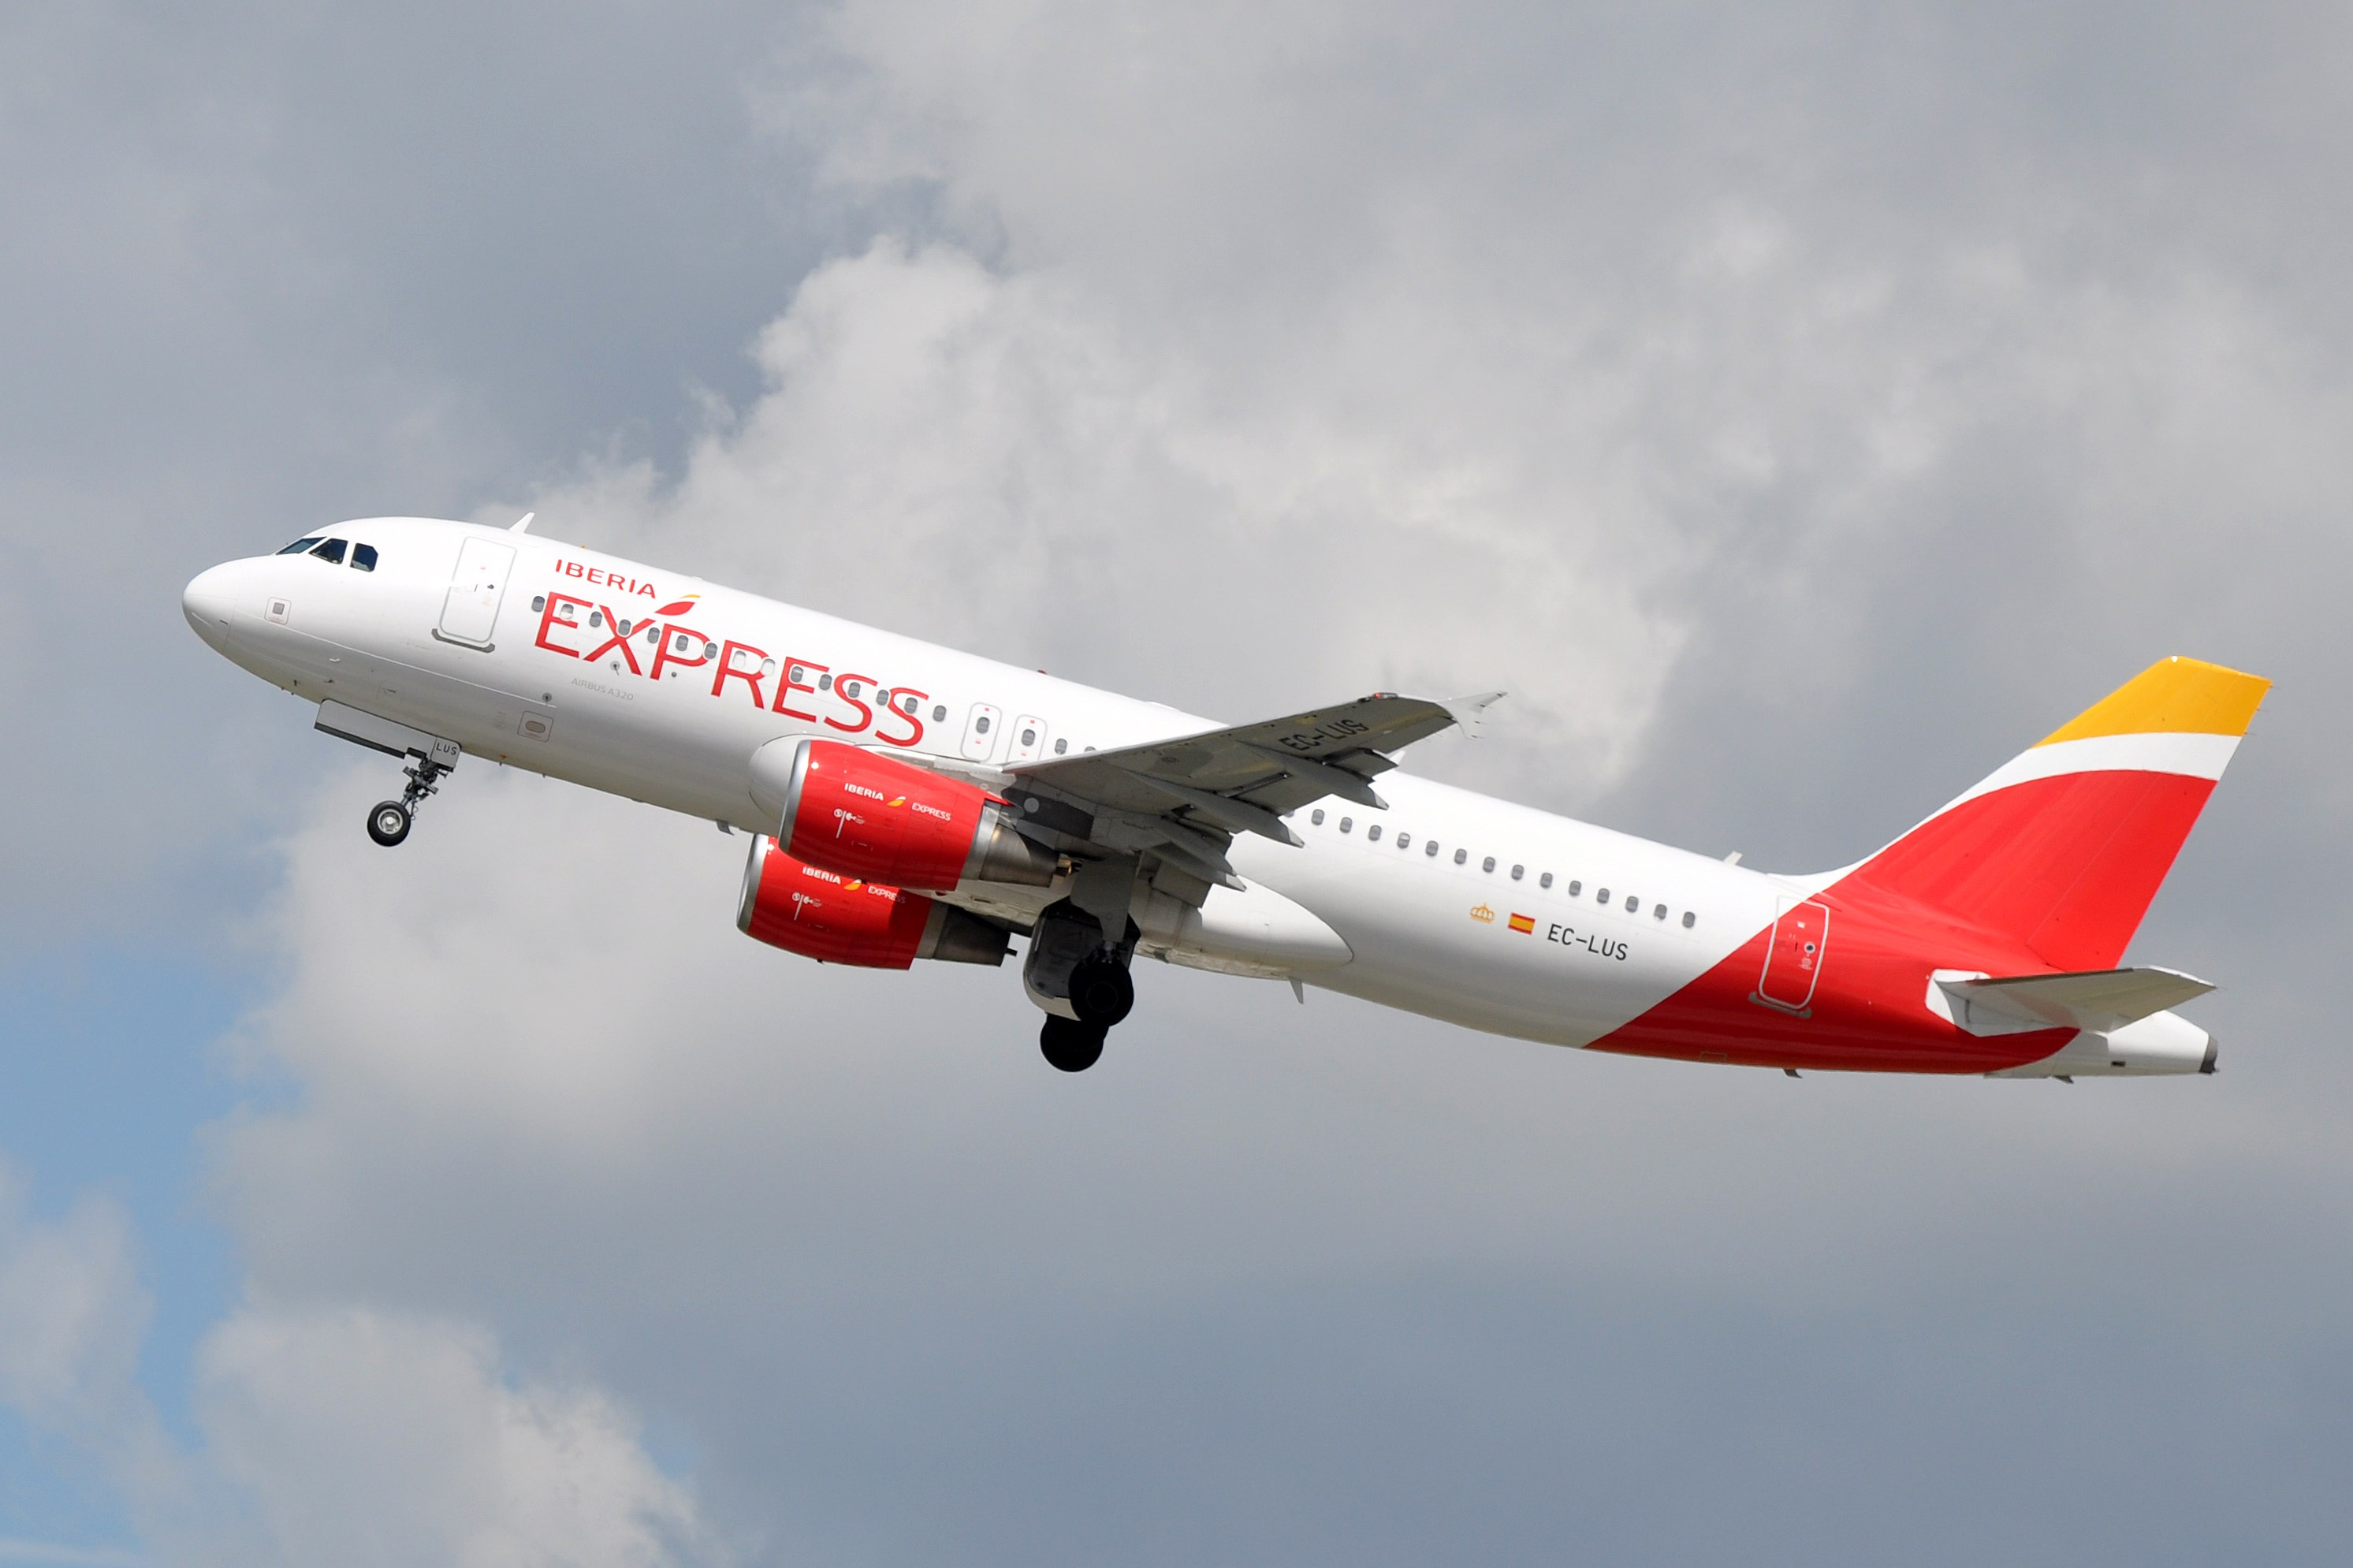 Photo of an Iberia Express airplane. Source: Flickr.